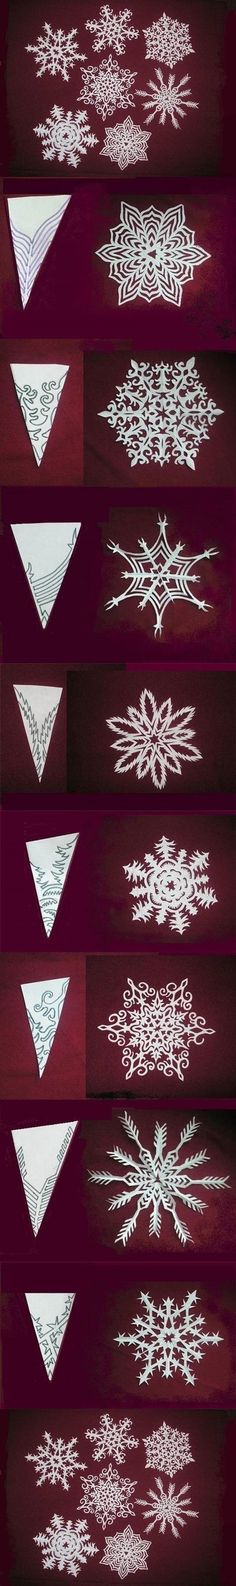 Wonderful DIY Paper Snowflakes With Pattern by wonderfuldiy #DIY #Paper_Snowflakes